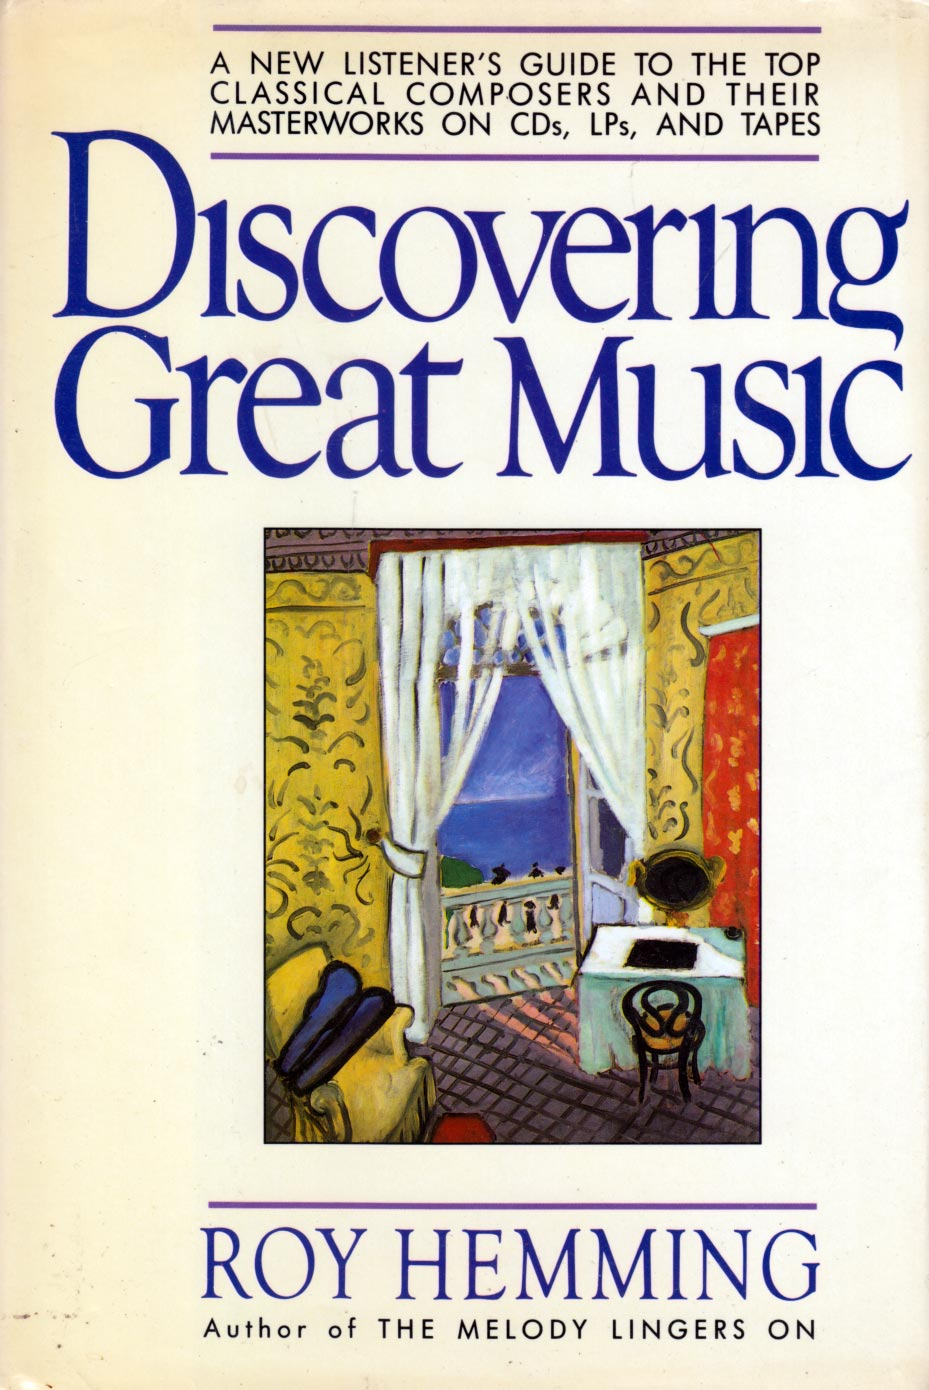 Discovering Great Music: A New Listener's Guide to the Top Classical Composers and Their Masterworks - Hemming, Roy